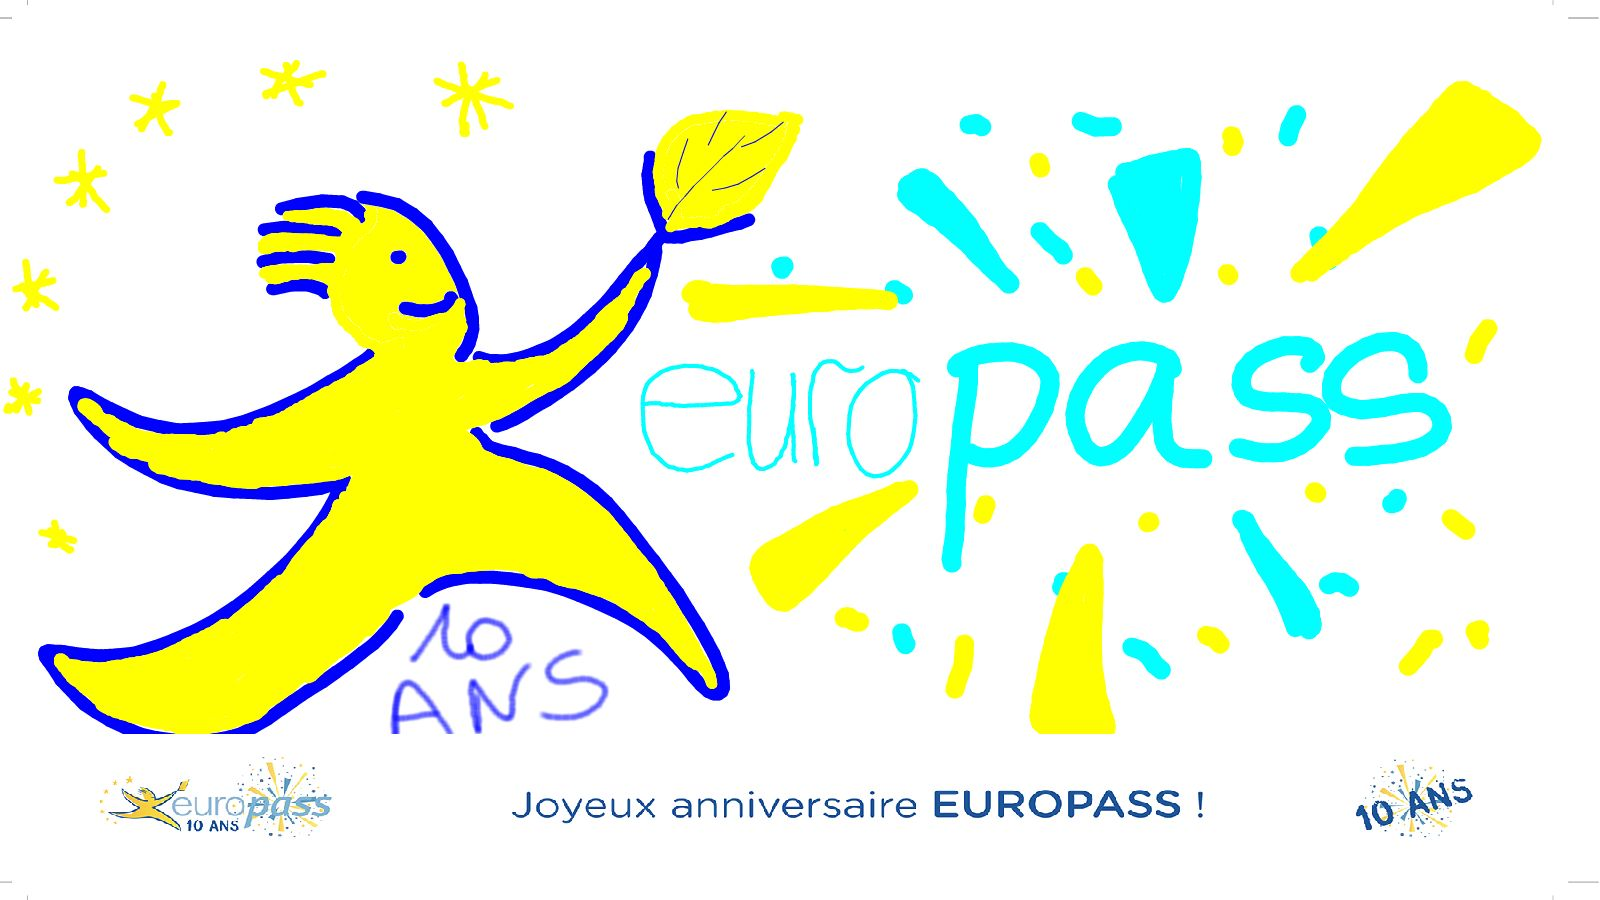 Europass10Years Join the party! Europass conferasmus